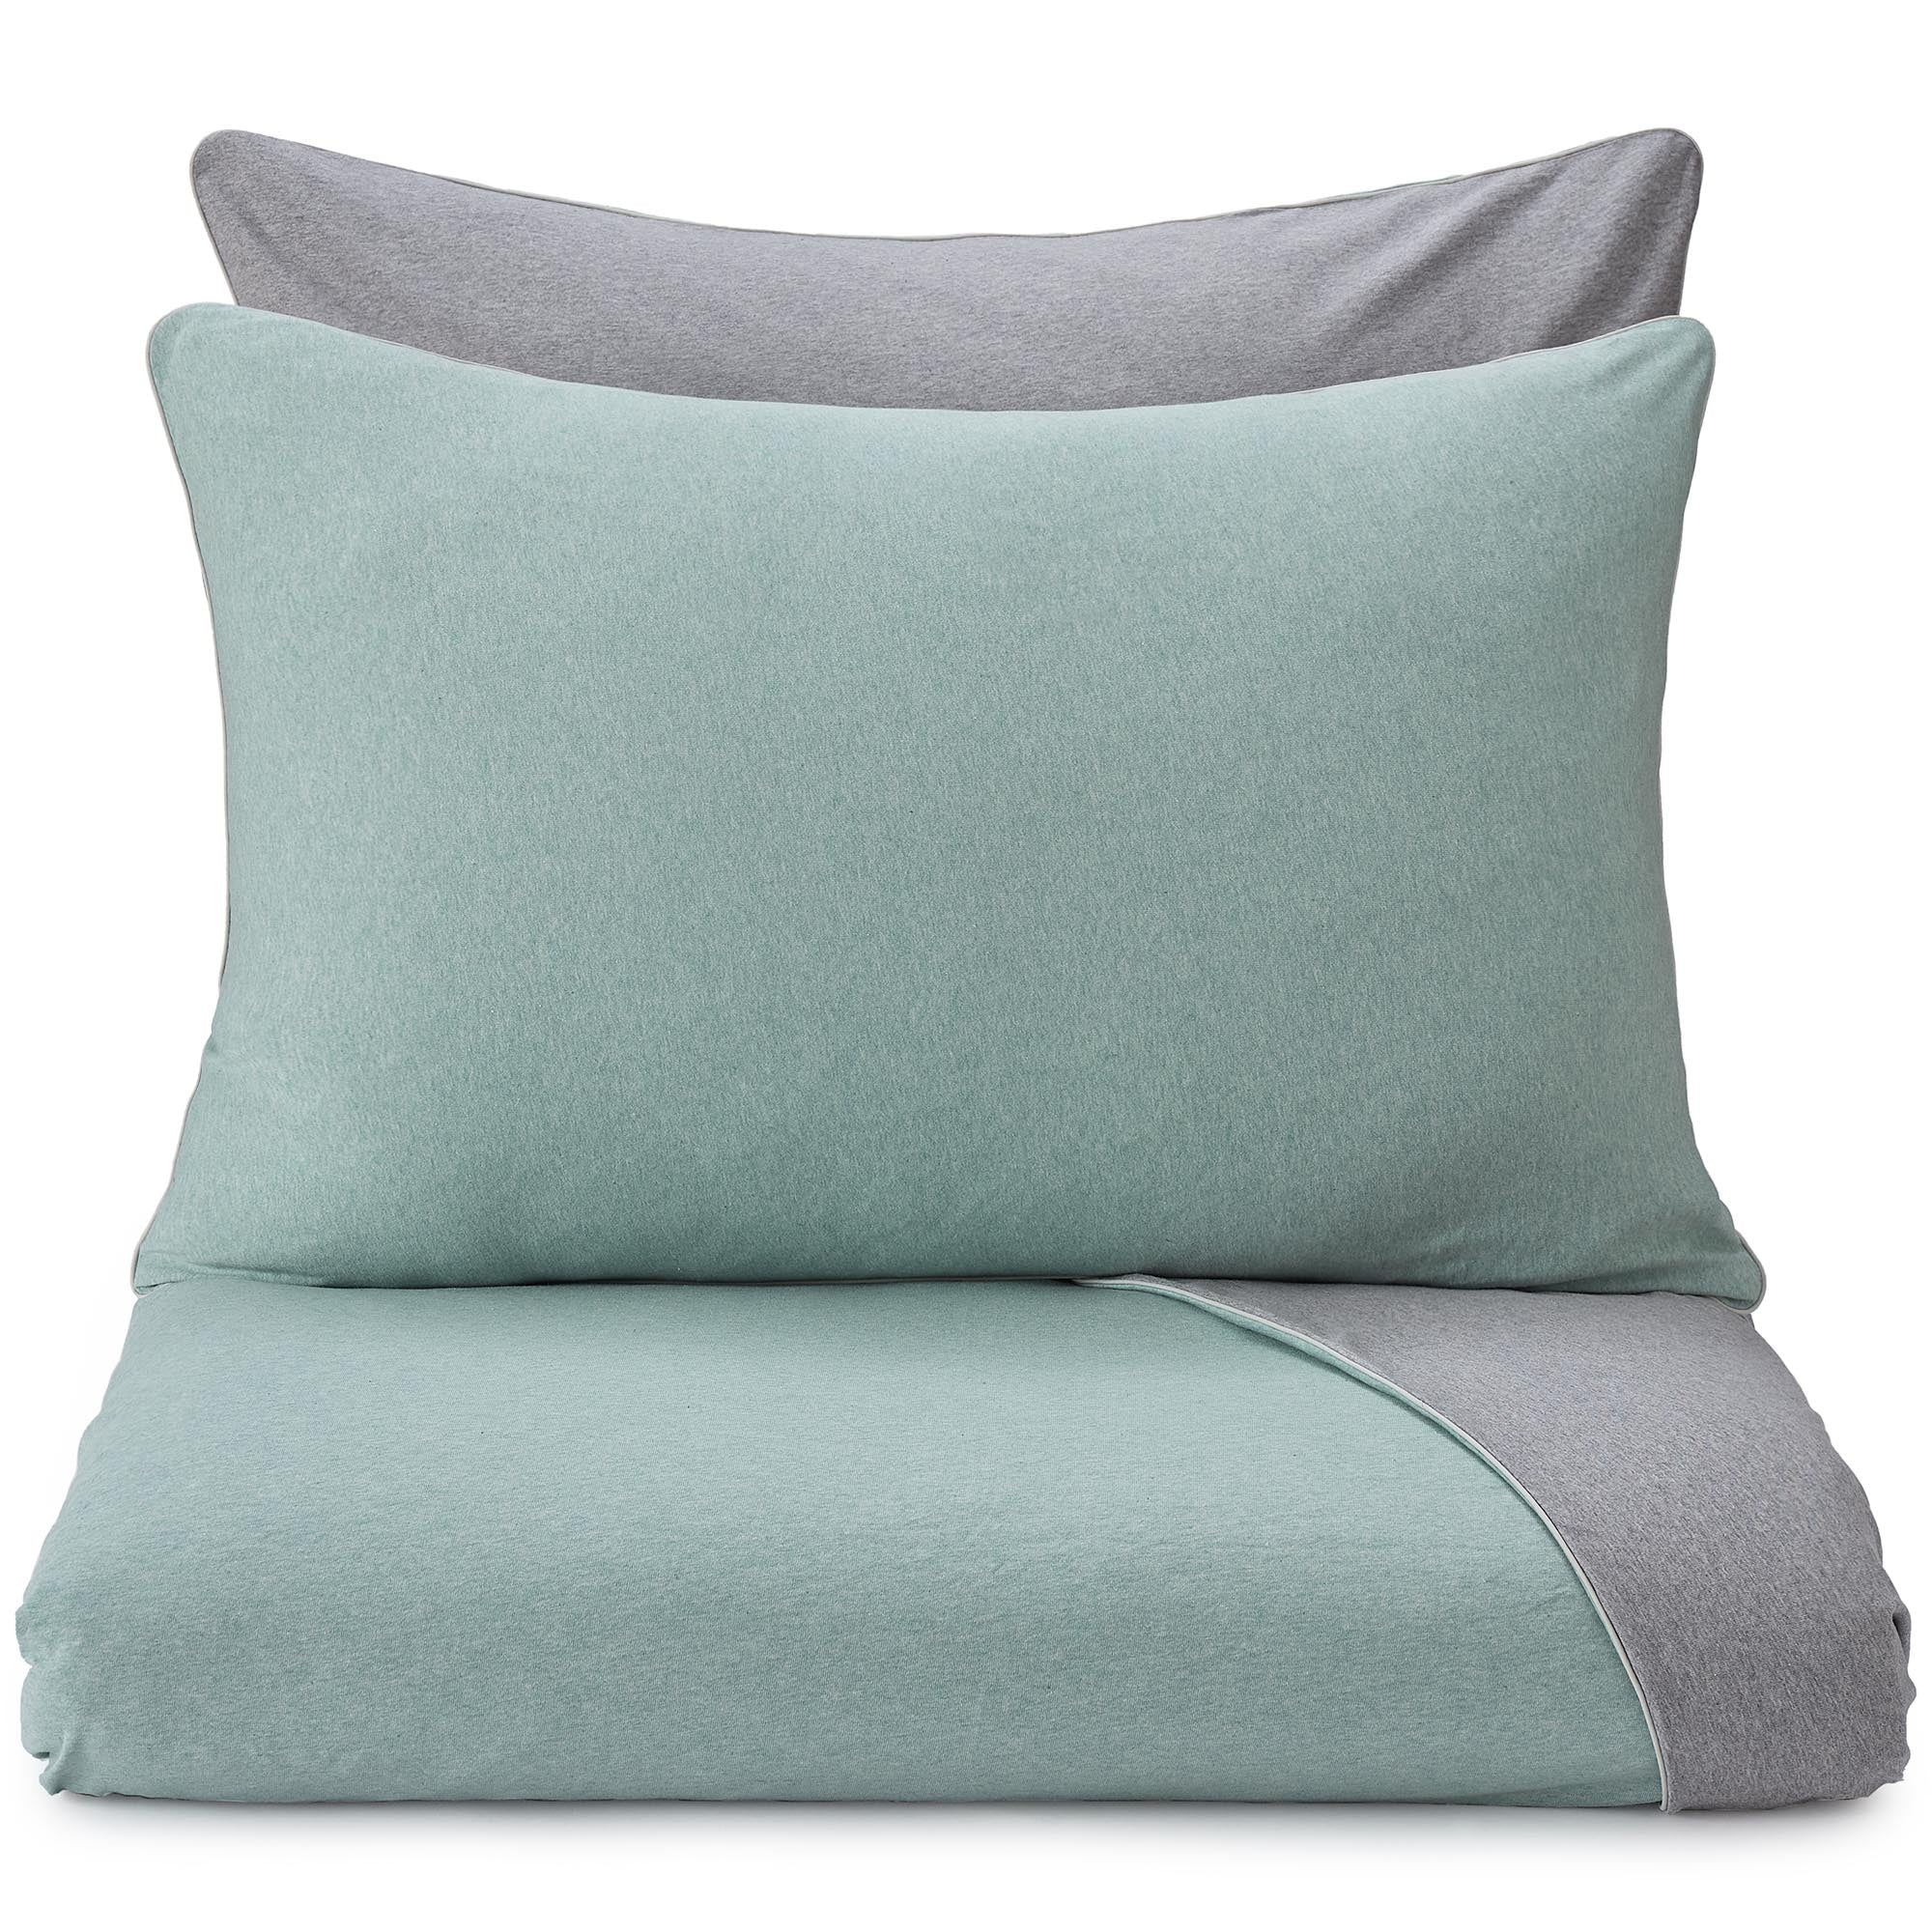 Coria Pillowcase [Light grey green melange/Grey melange/Grey]